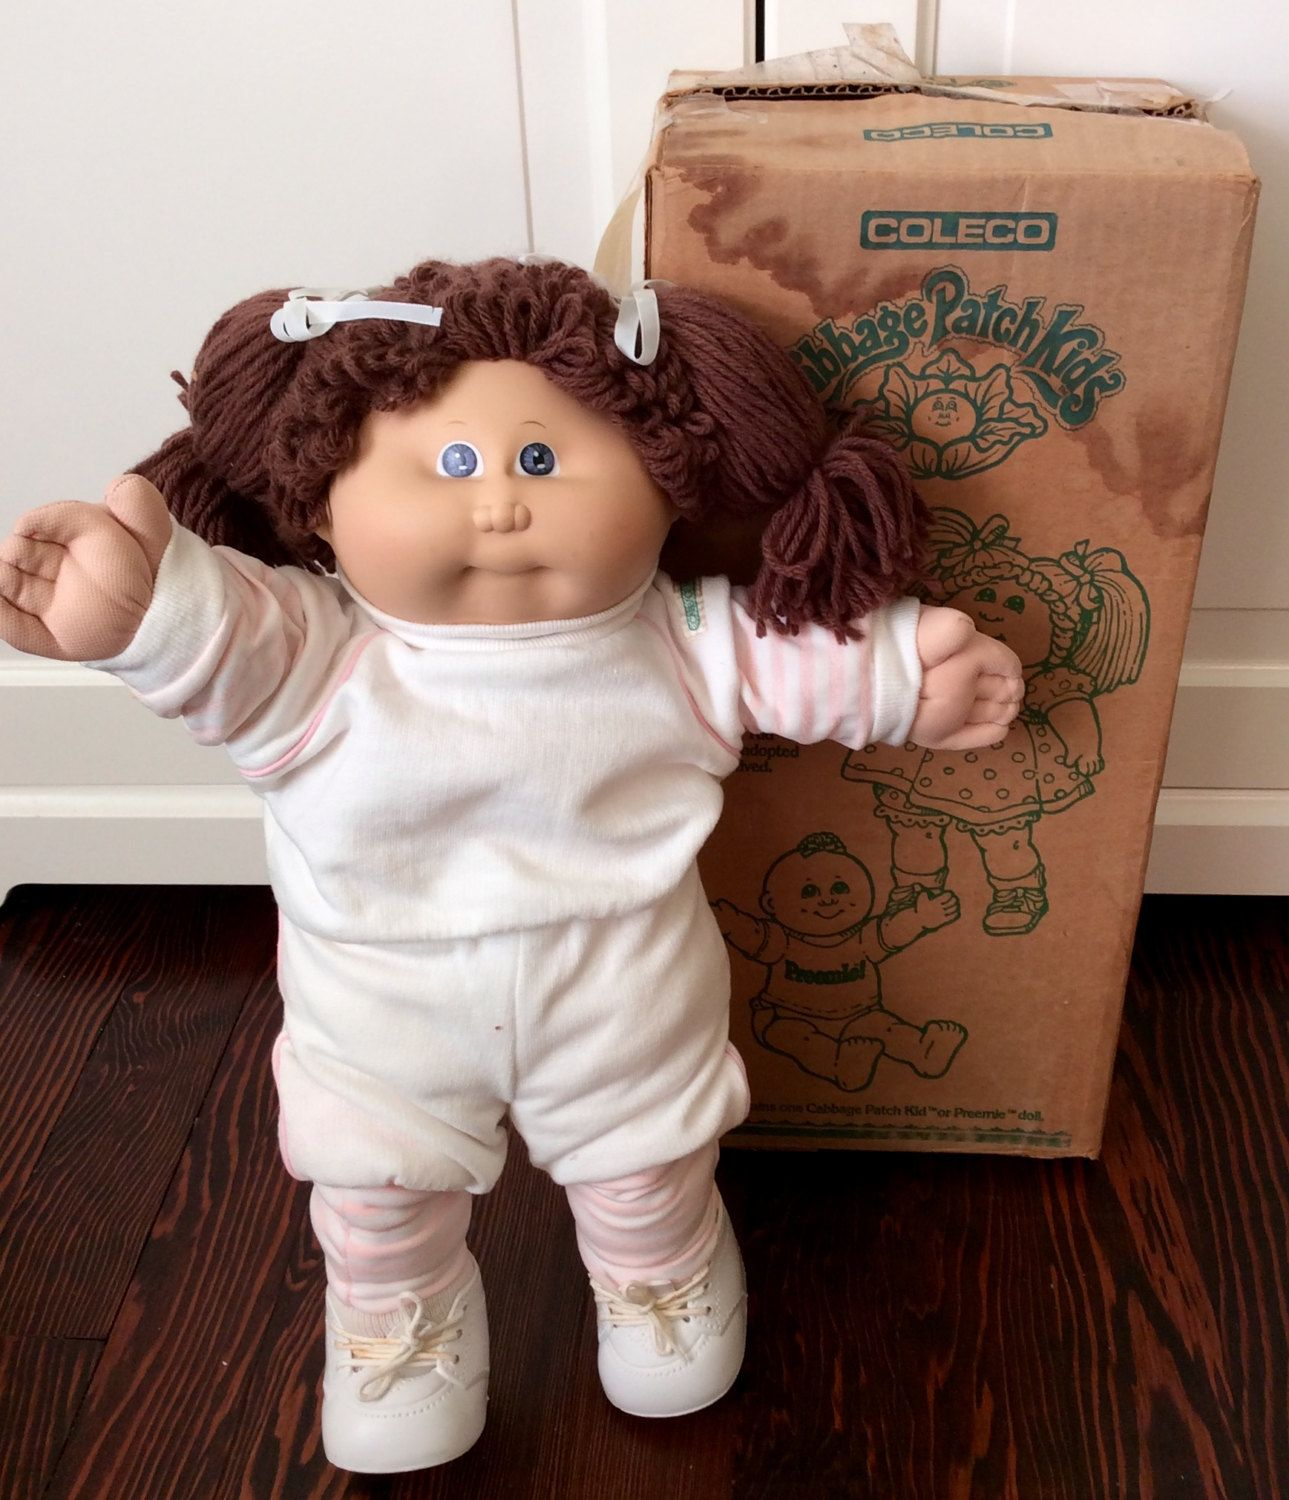 1985 Cabbage Patch Kids Girl Coleco Doll Iob Vintage Cabbage Etsy Cabbage Patch Dolls Cabbage Patch Kids Cabbage Patch Kids Dolls